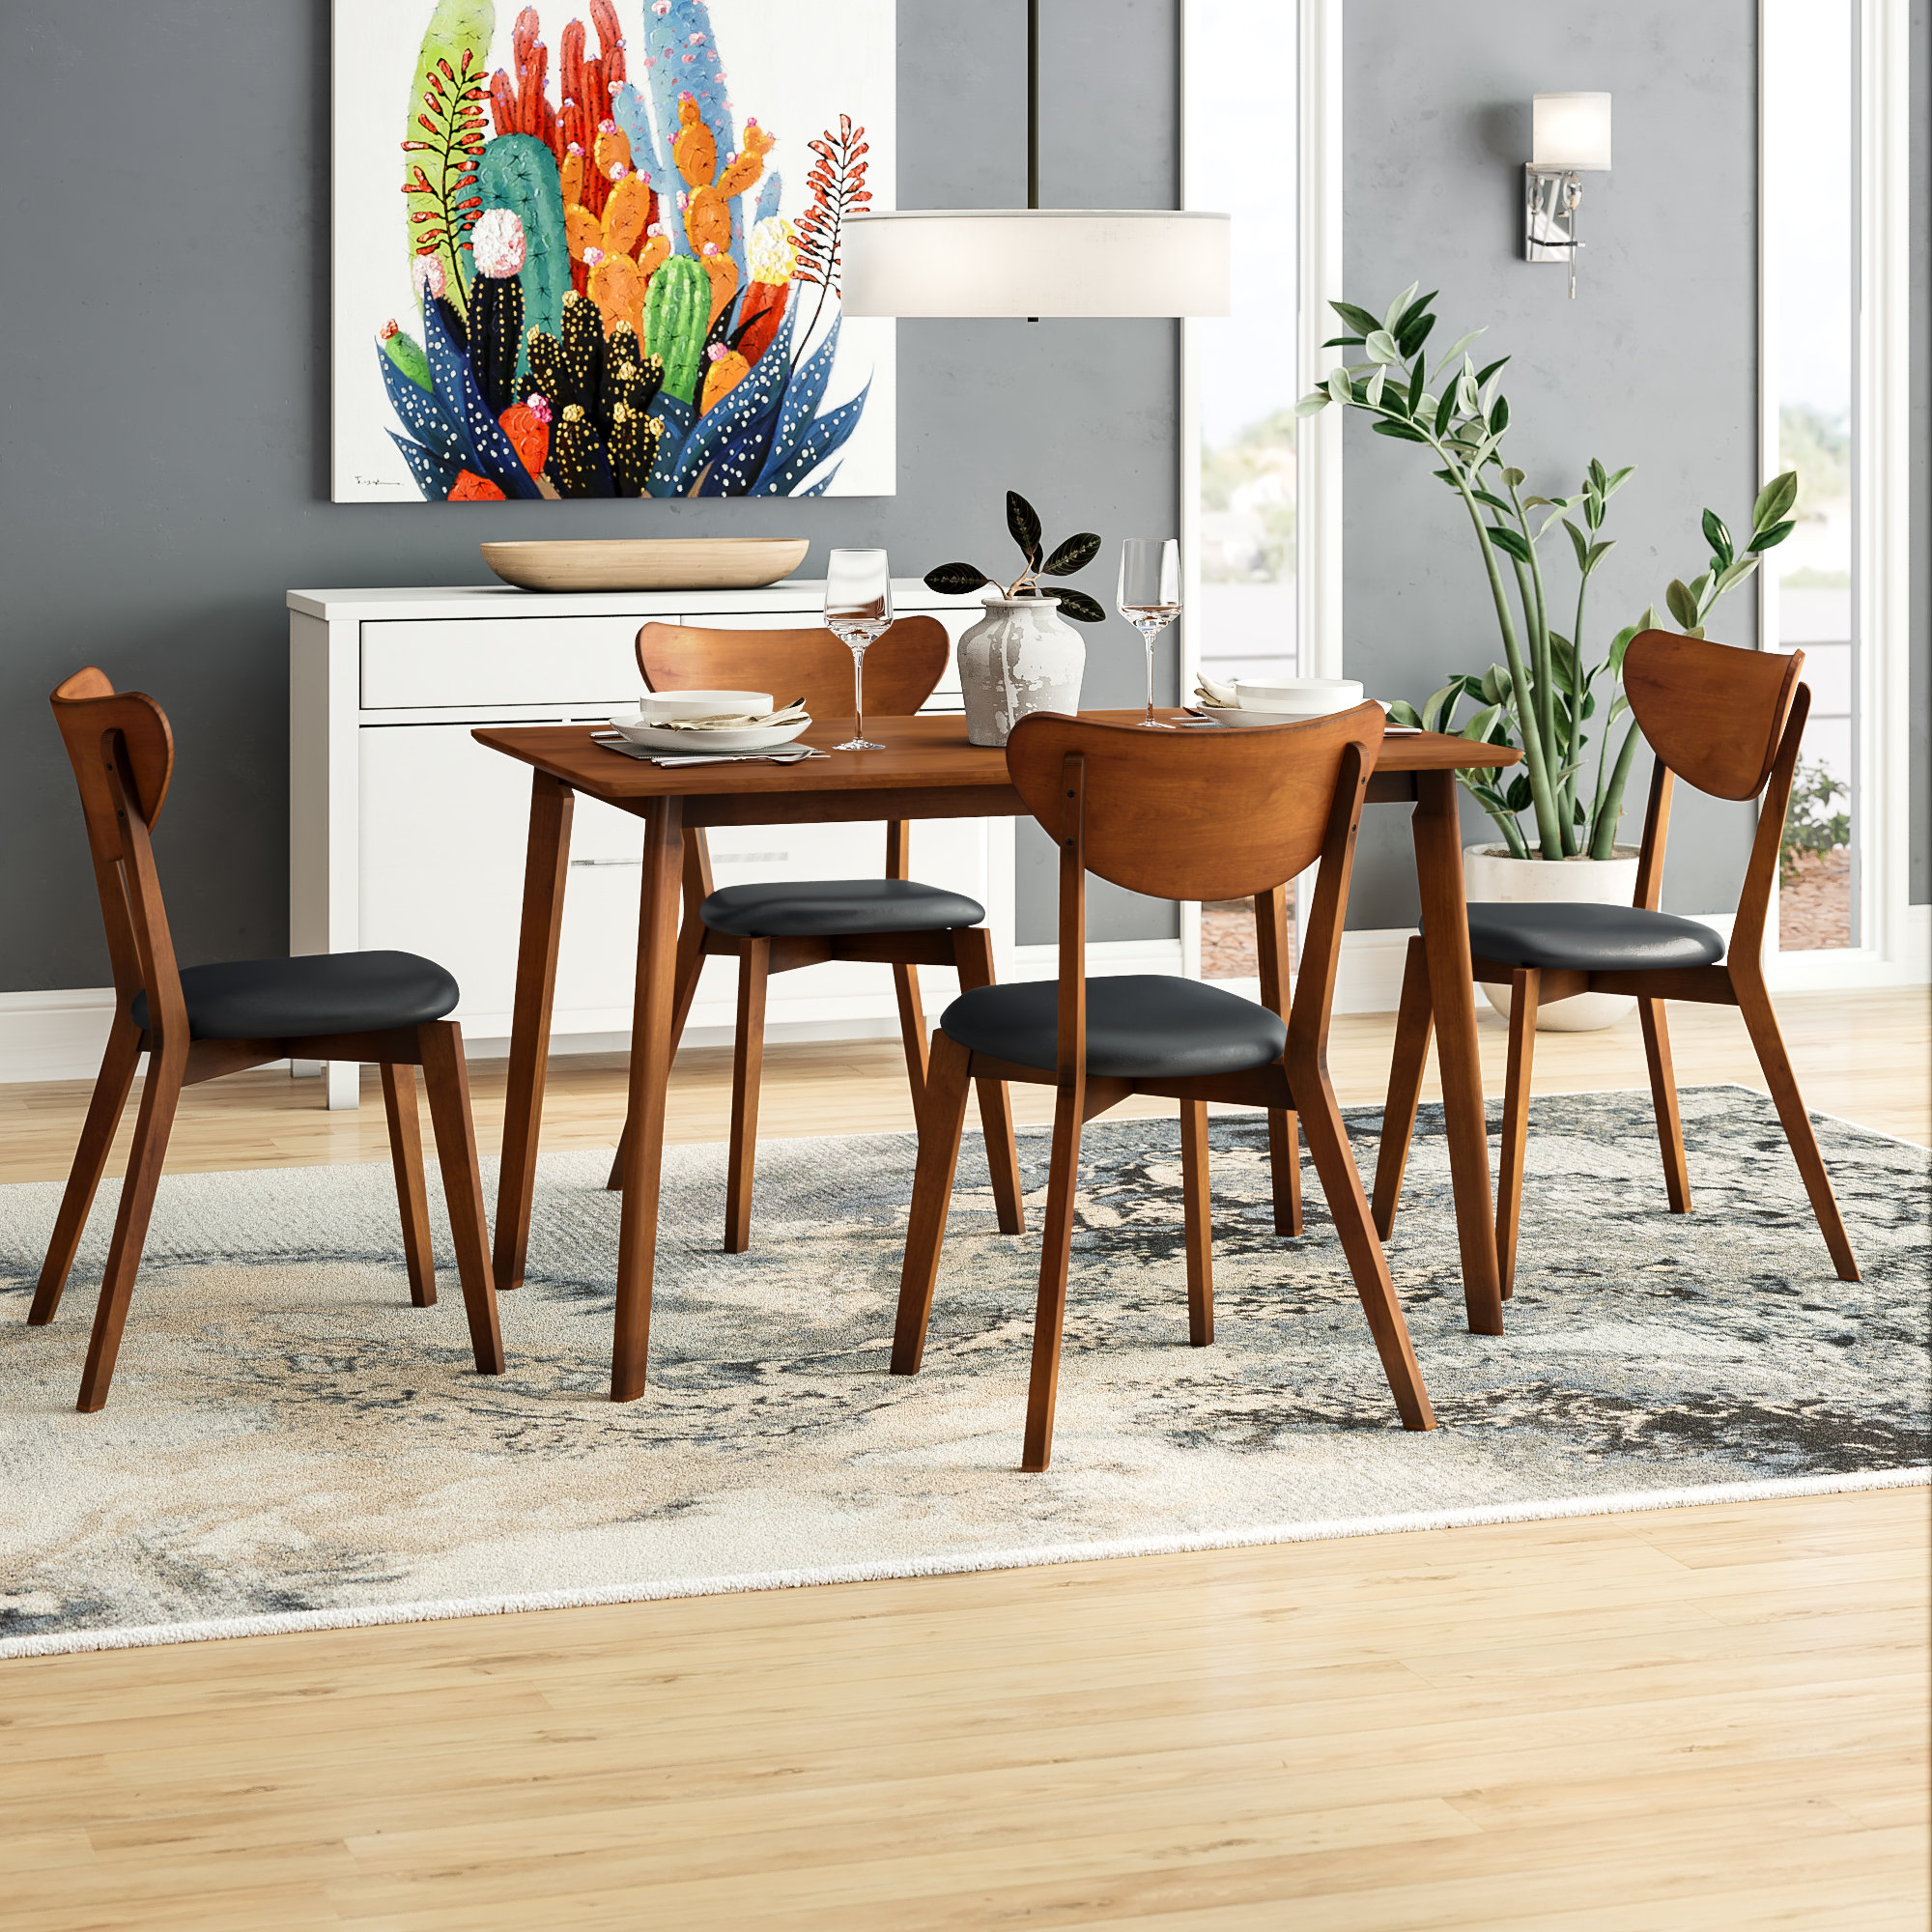 Wayfair Throughout Frida 3 Piece Dining Table Sets (#19 of 20)